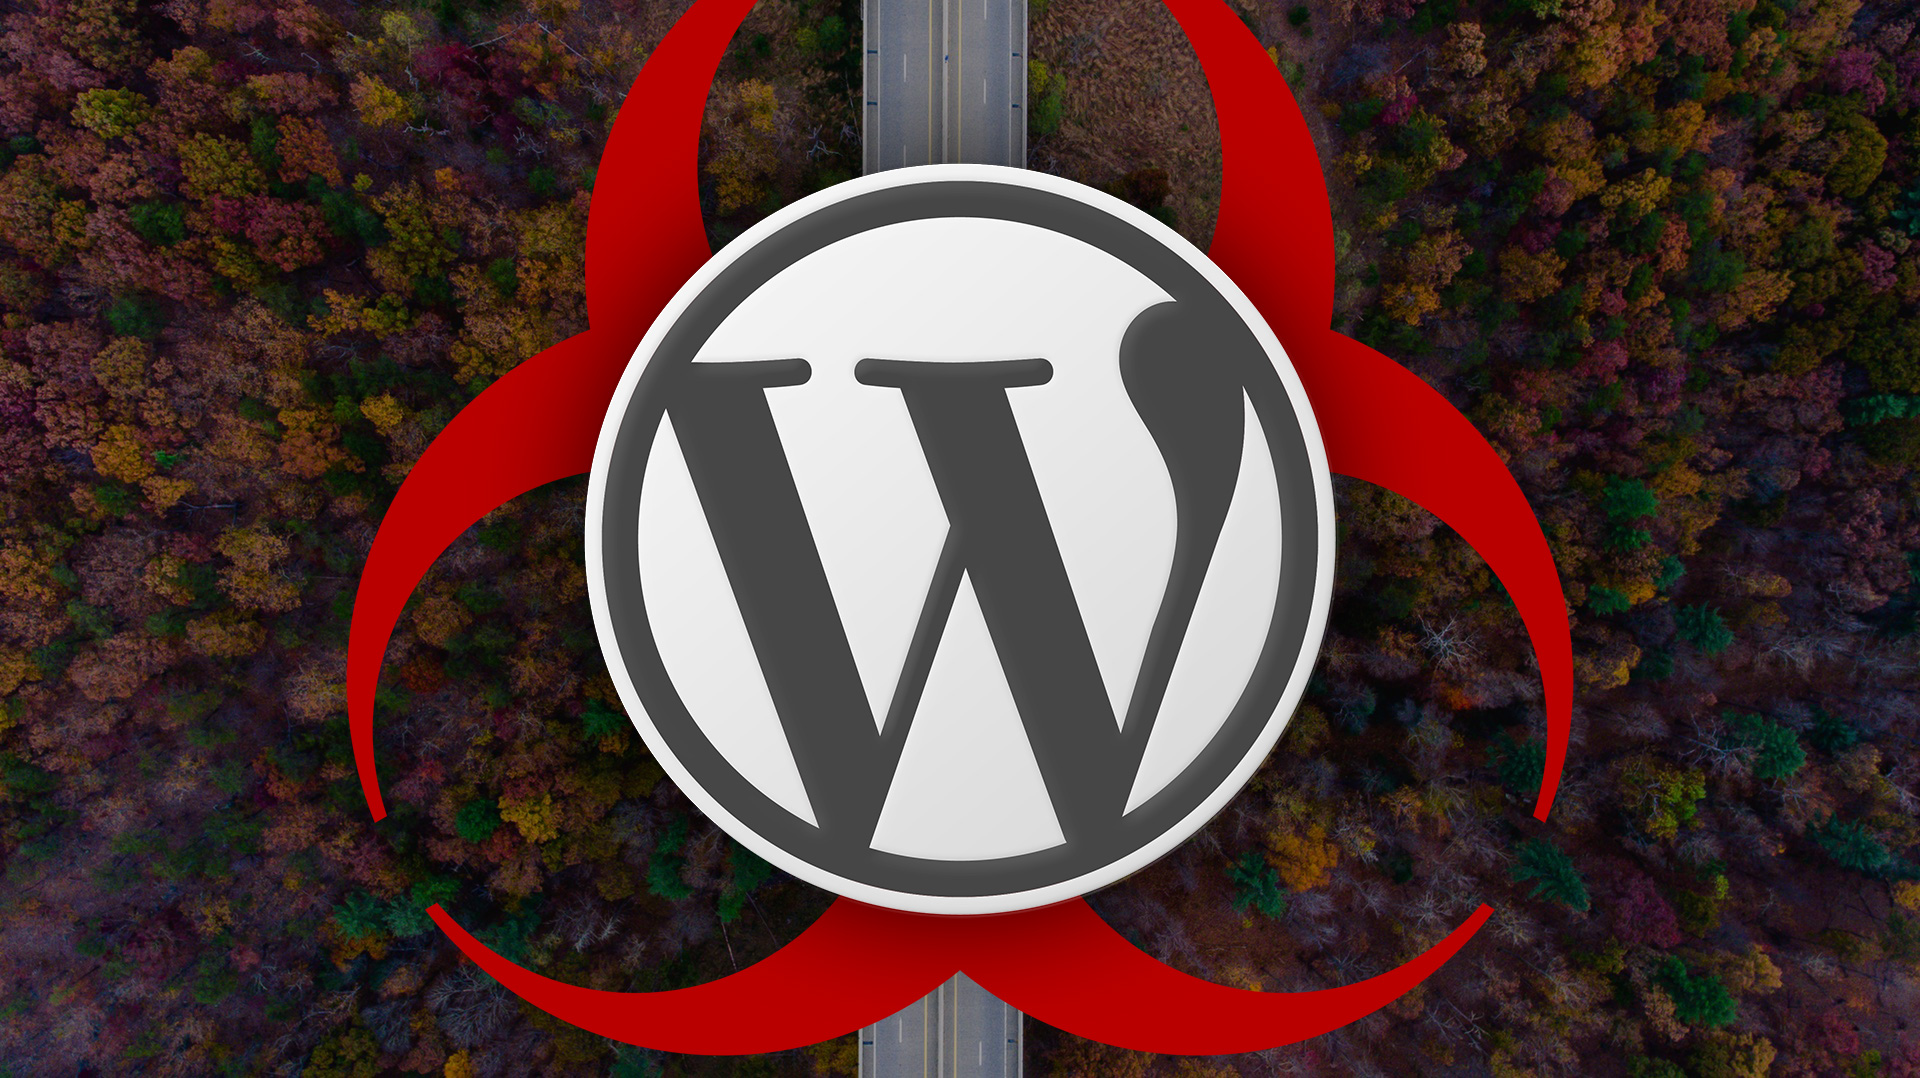 Free trojanized WordPress themes lead to widespread compromise of web servers - Help Net Security